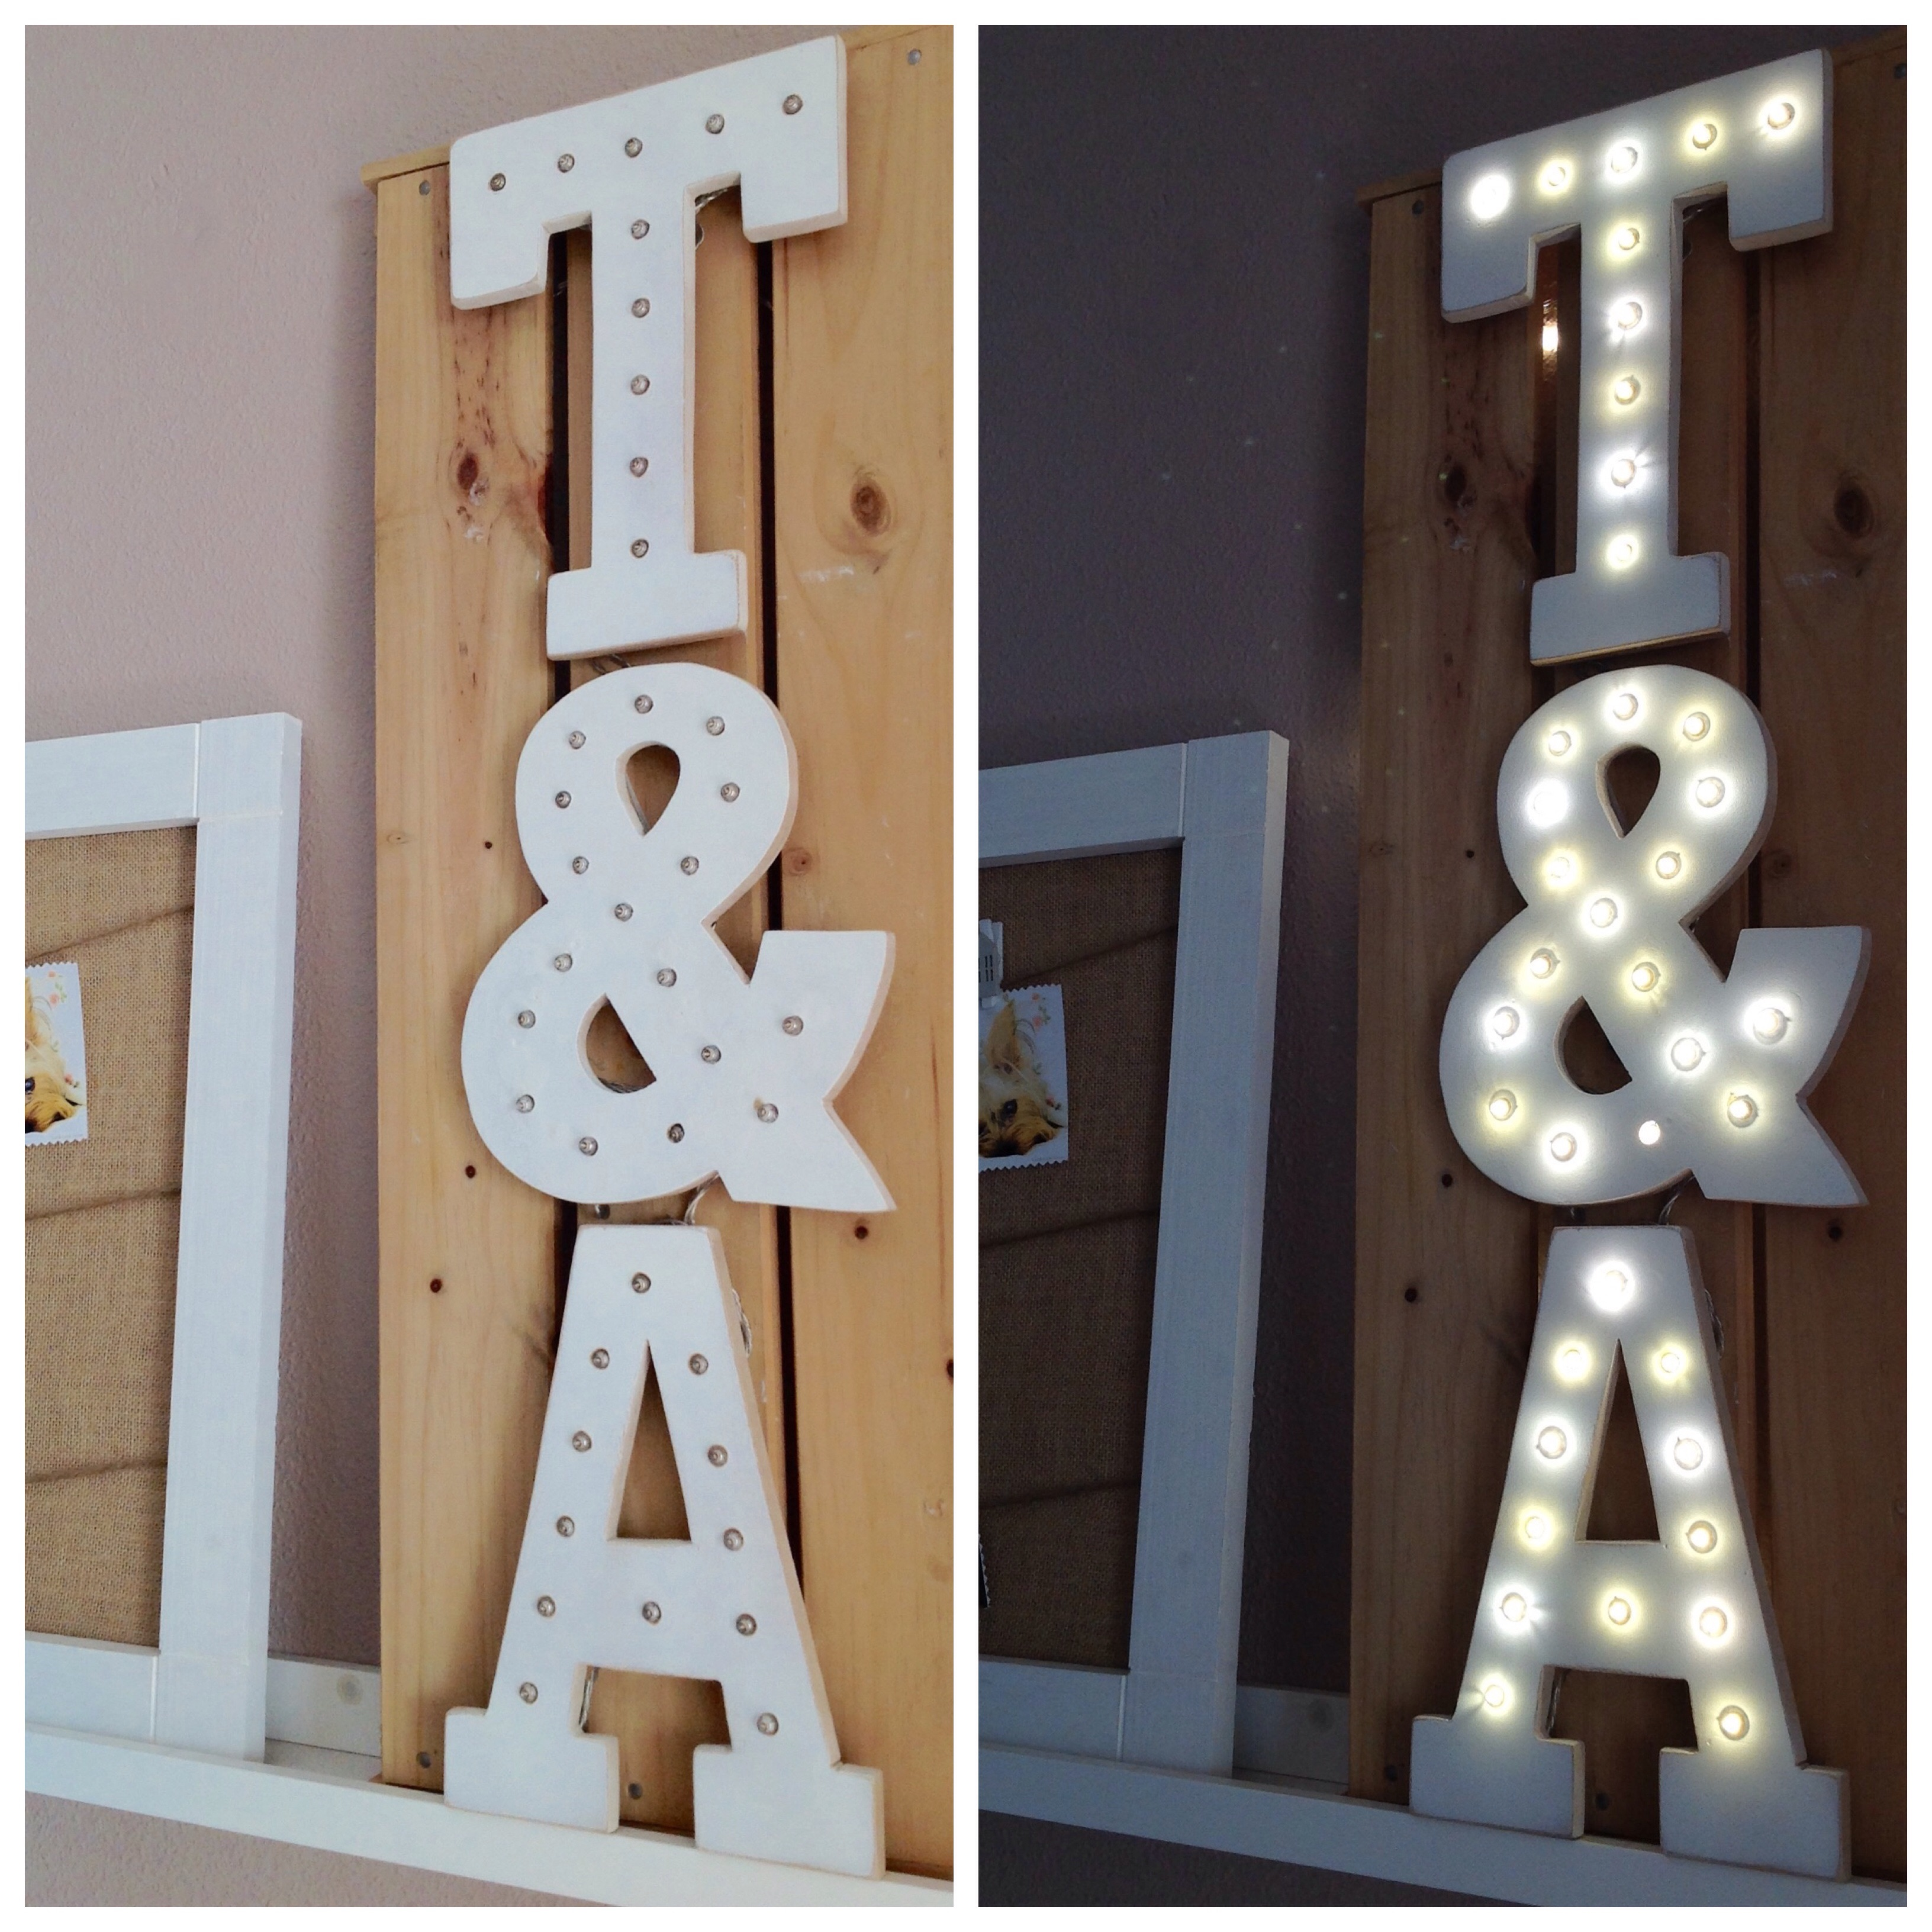 letras luminosas leroy merlin